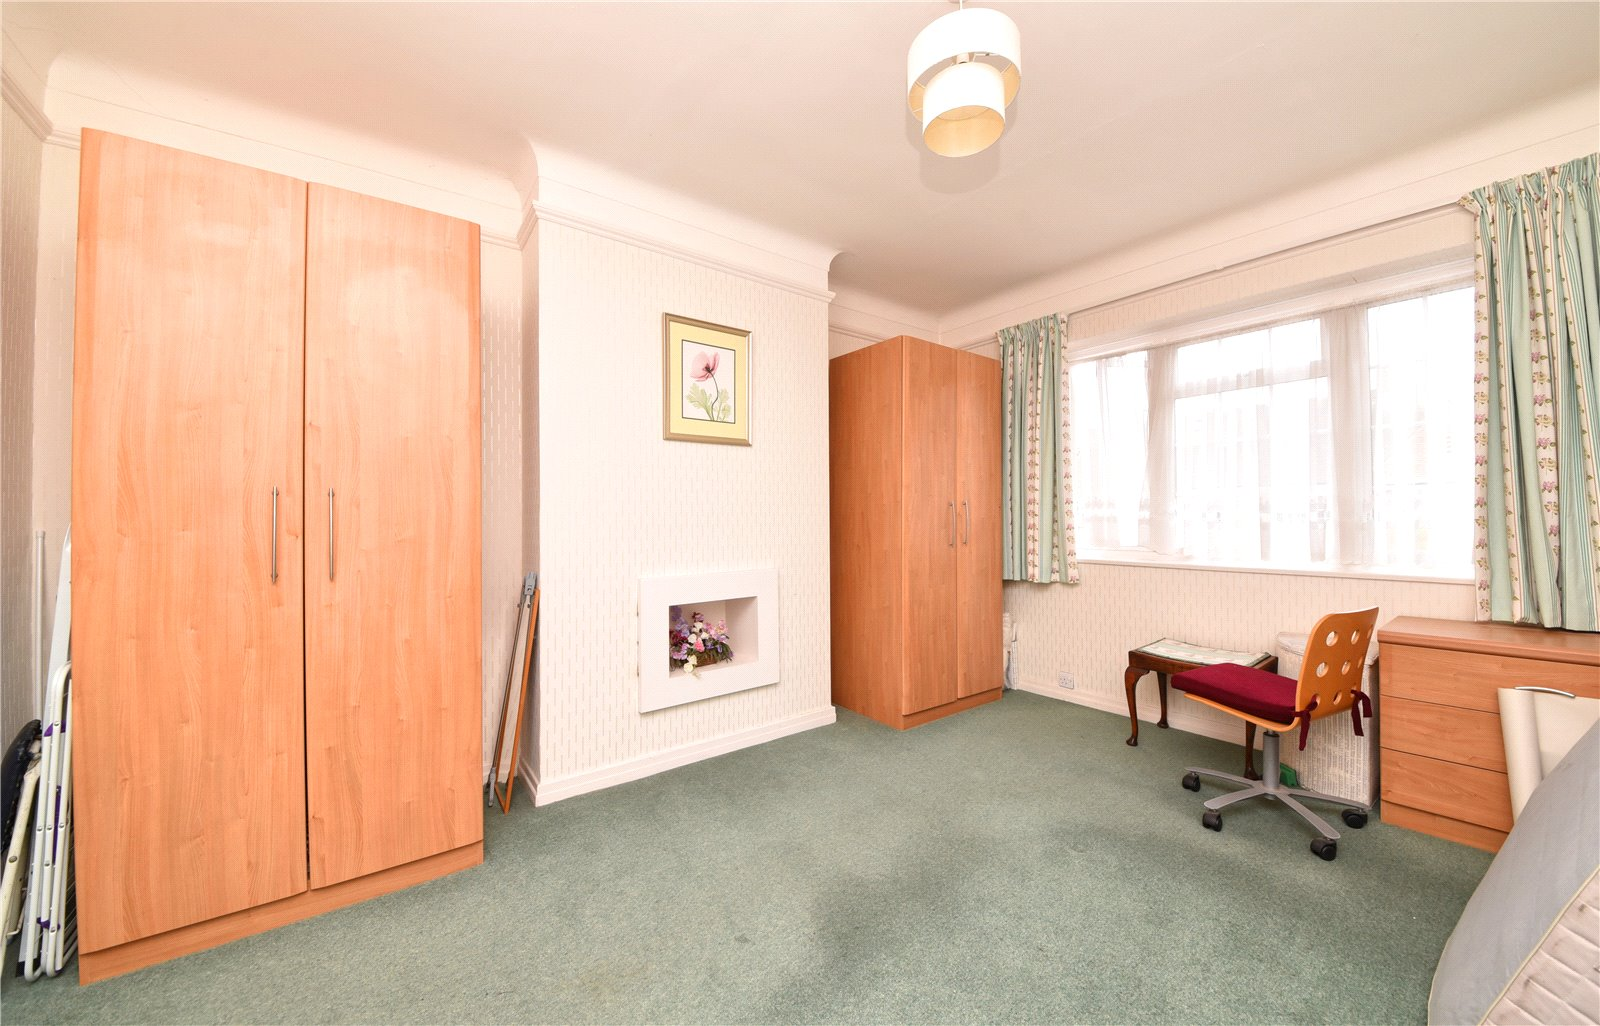 3 bed house for sale in London, N12 9ND  - Property Image 9